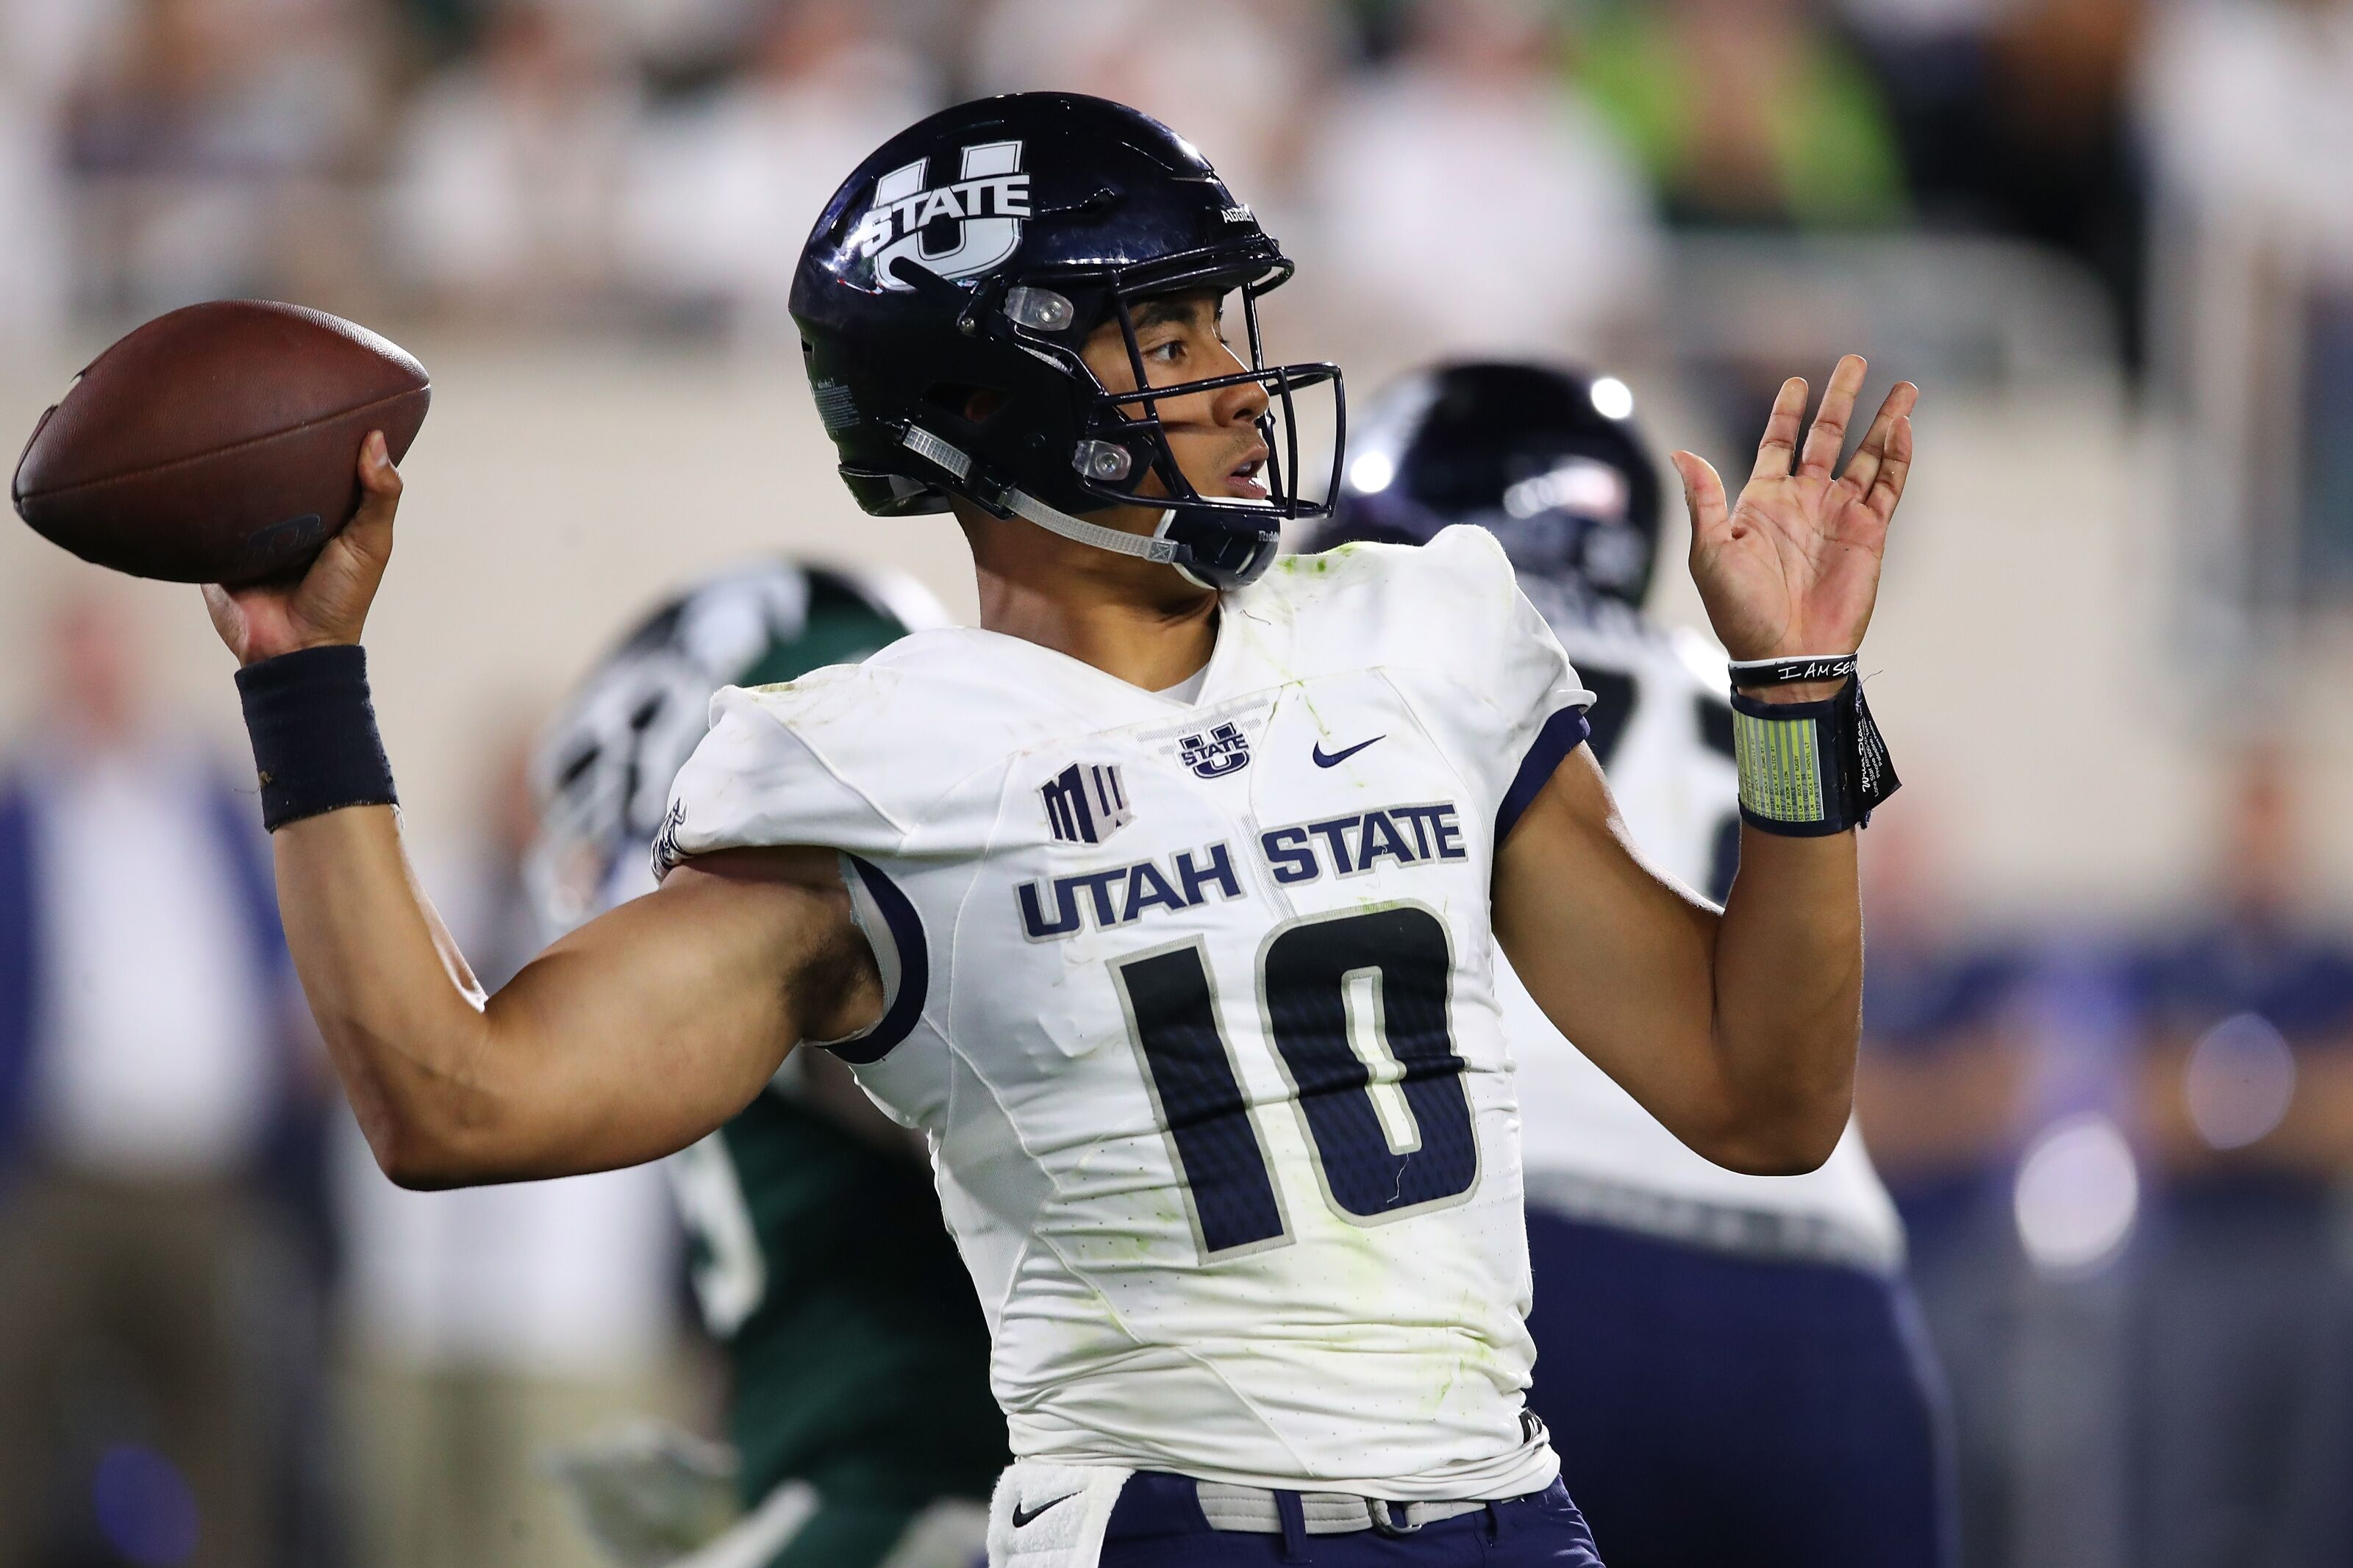 Utah State's Jordan Love ranked among top QB prospects for 2020 NFL draft